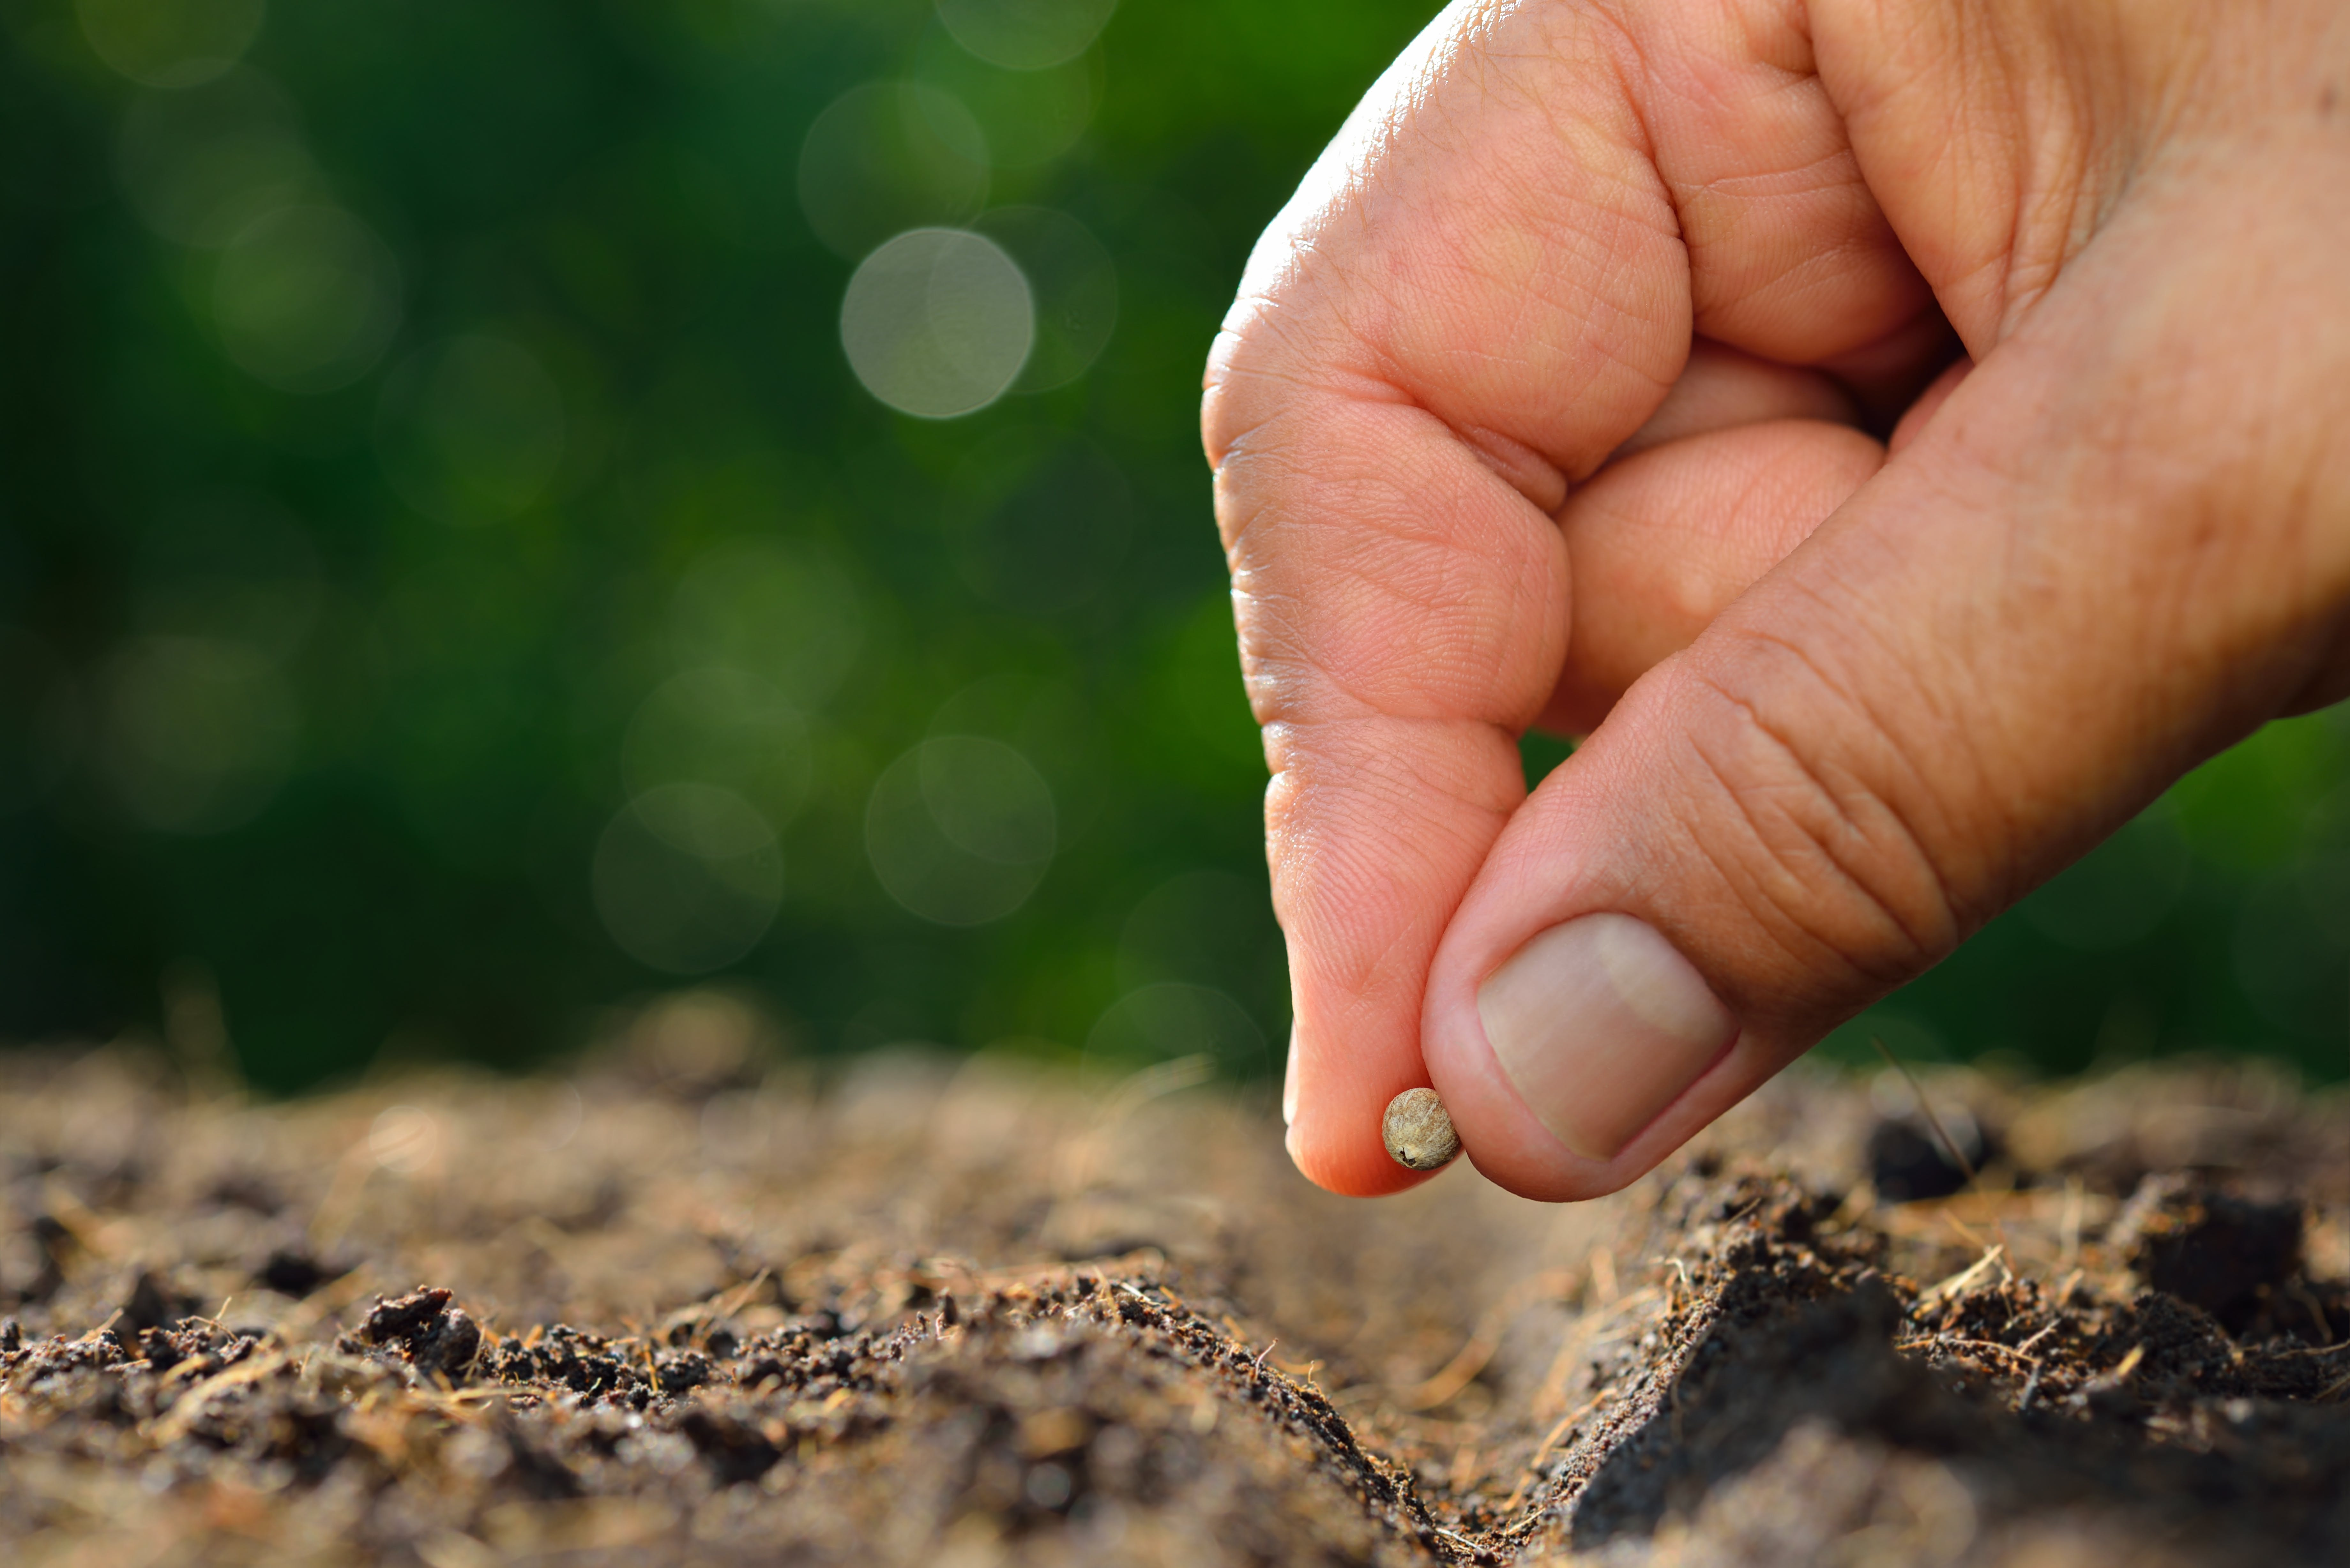 The seed-planting specialities